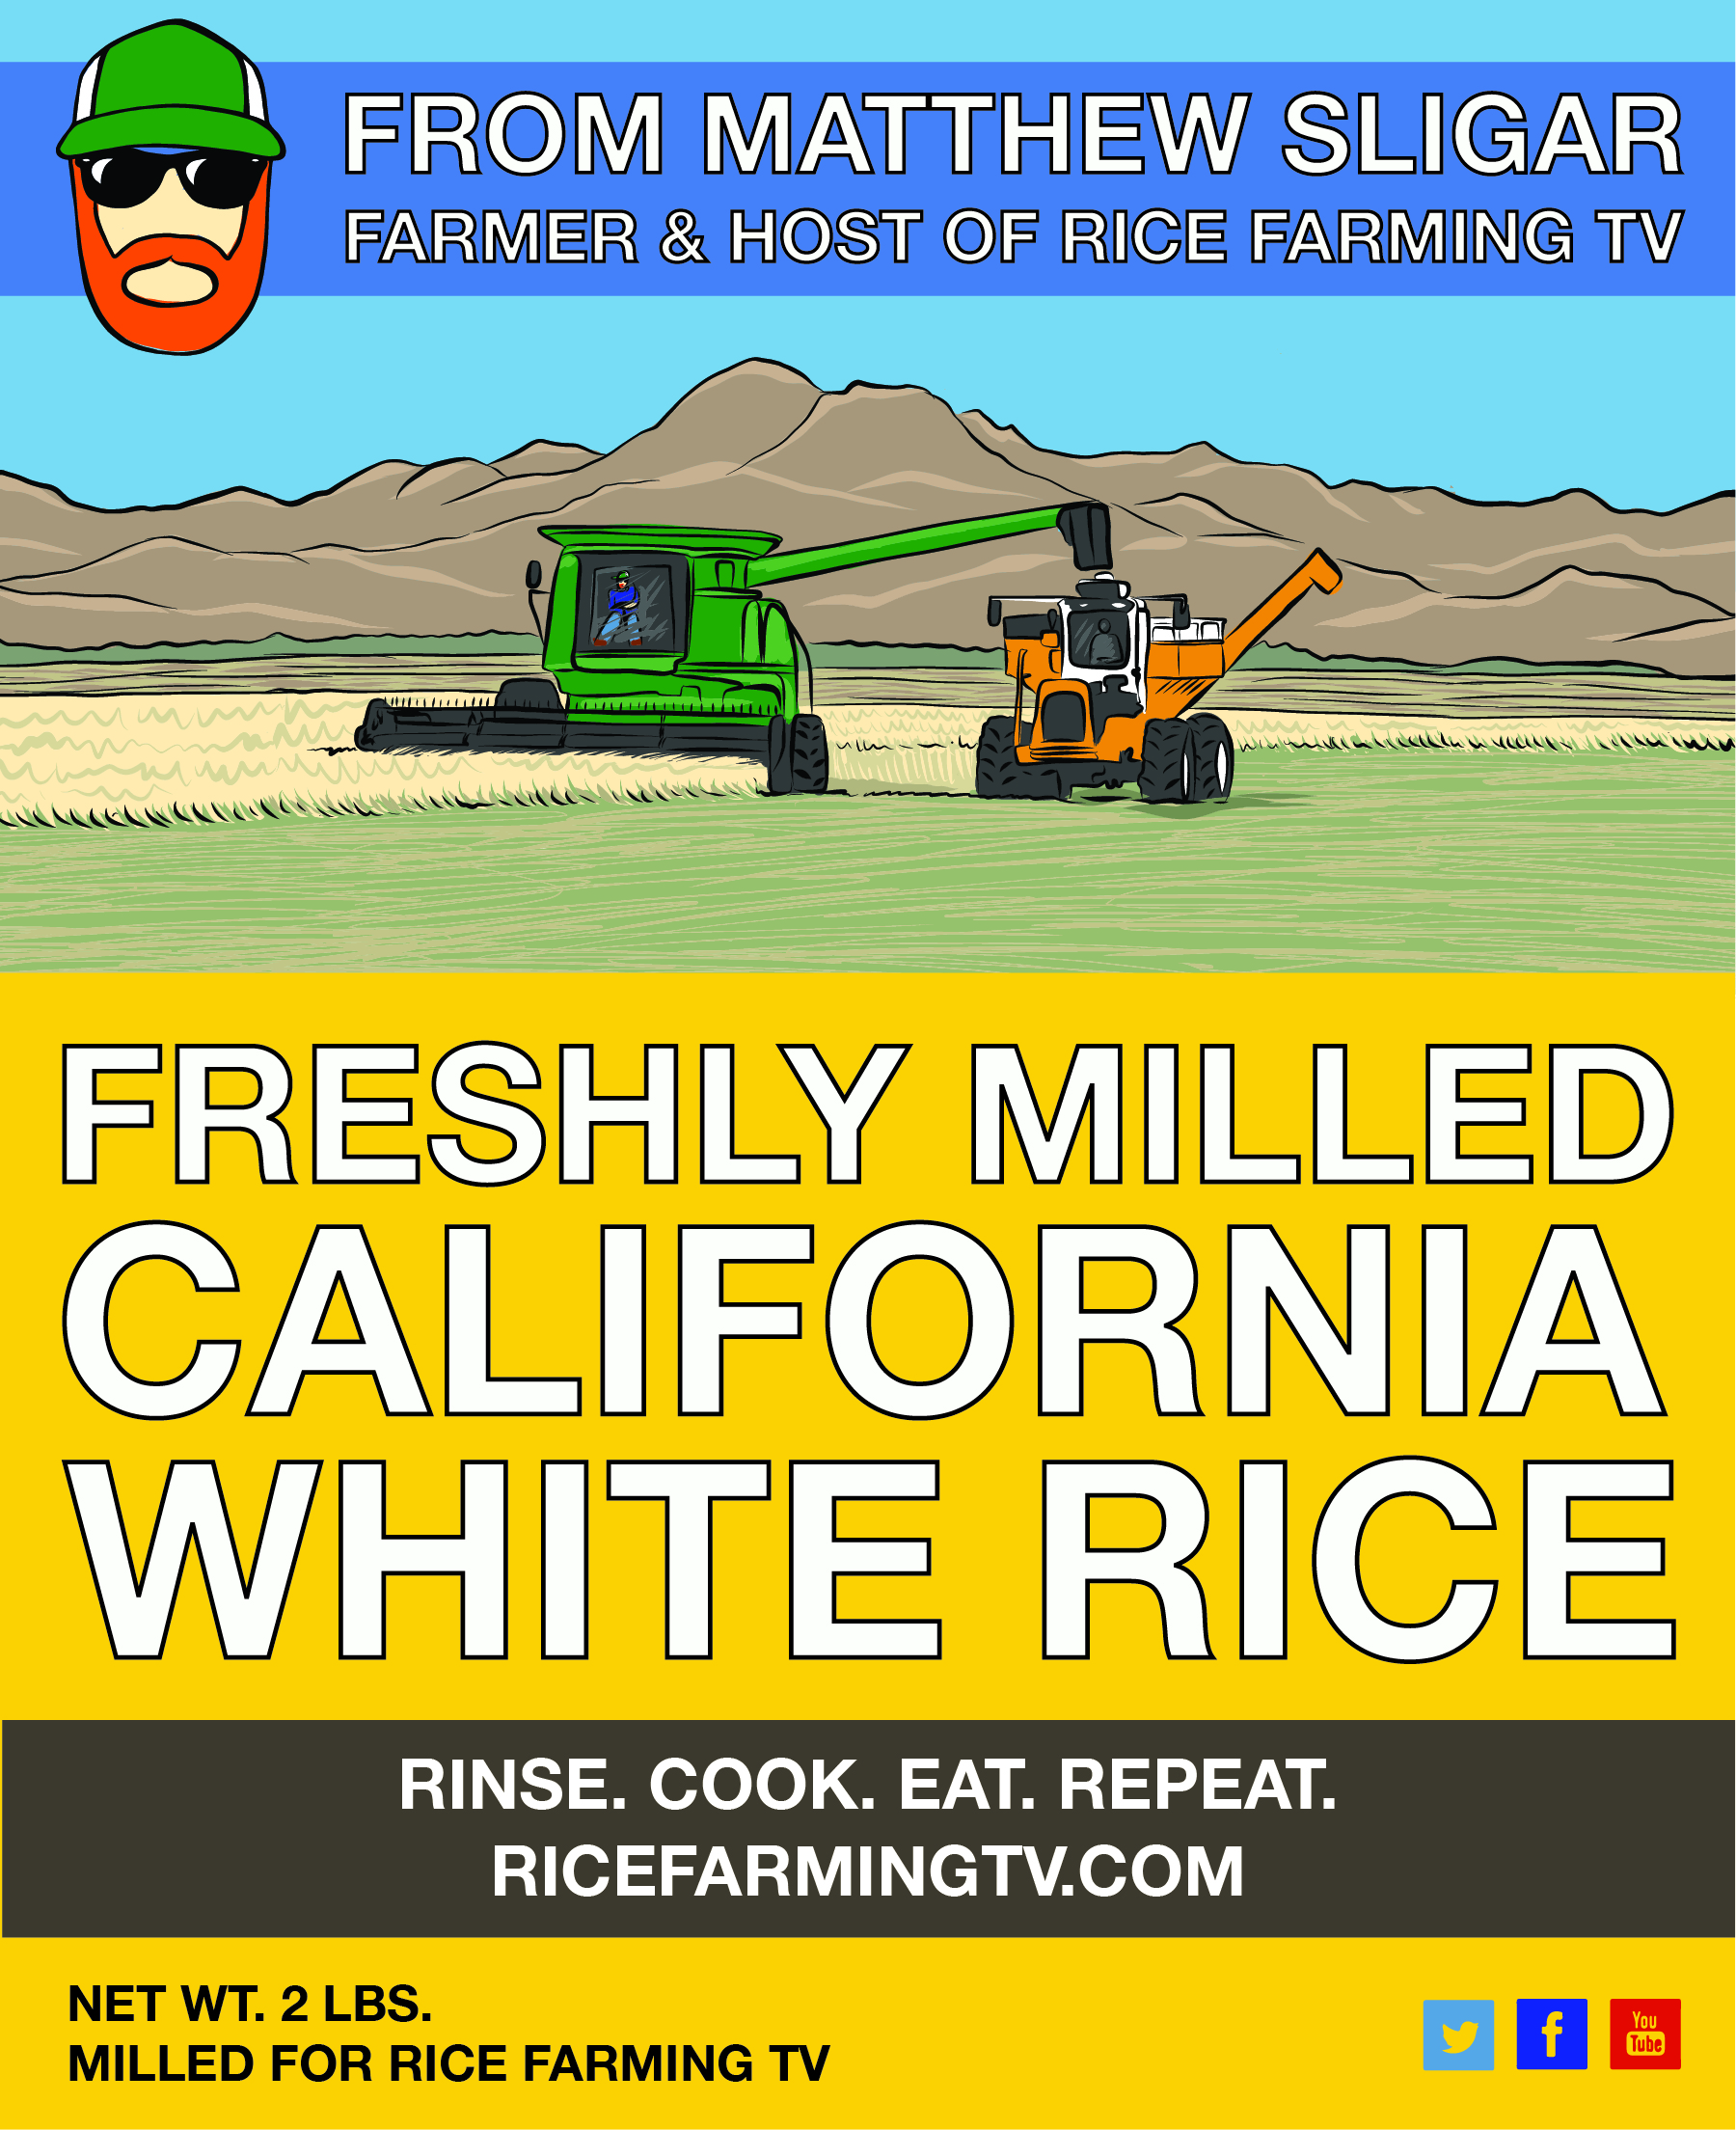 California White Rice